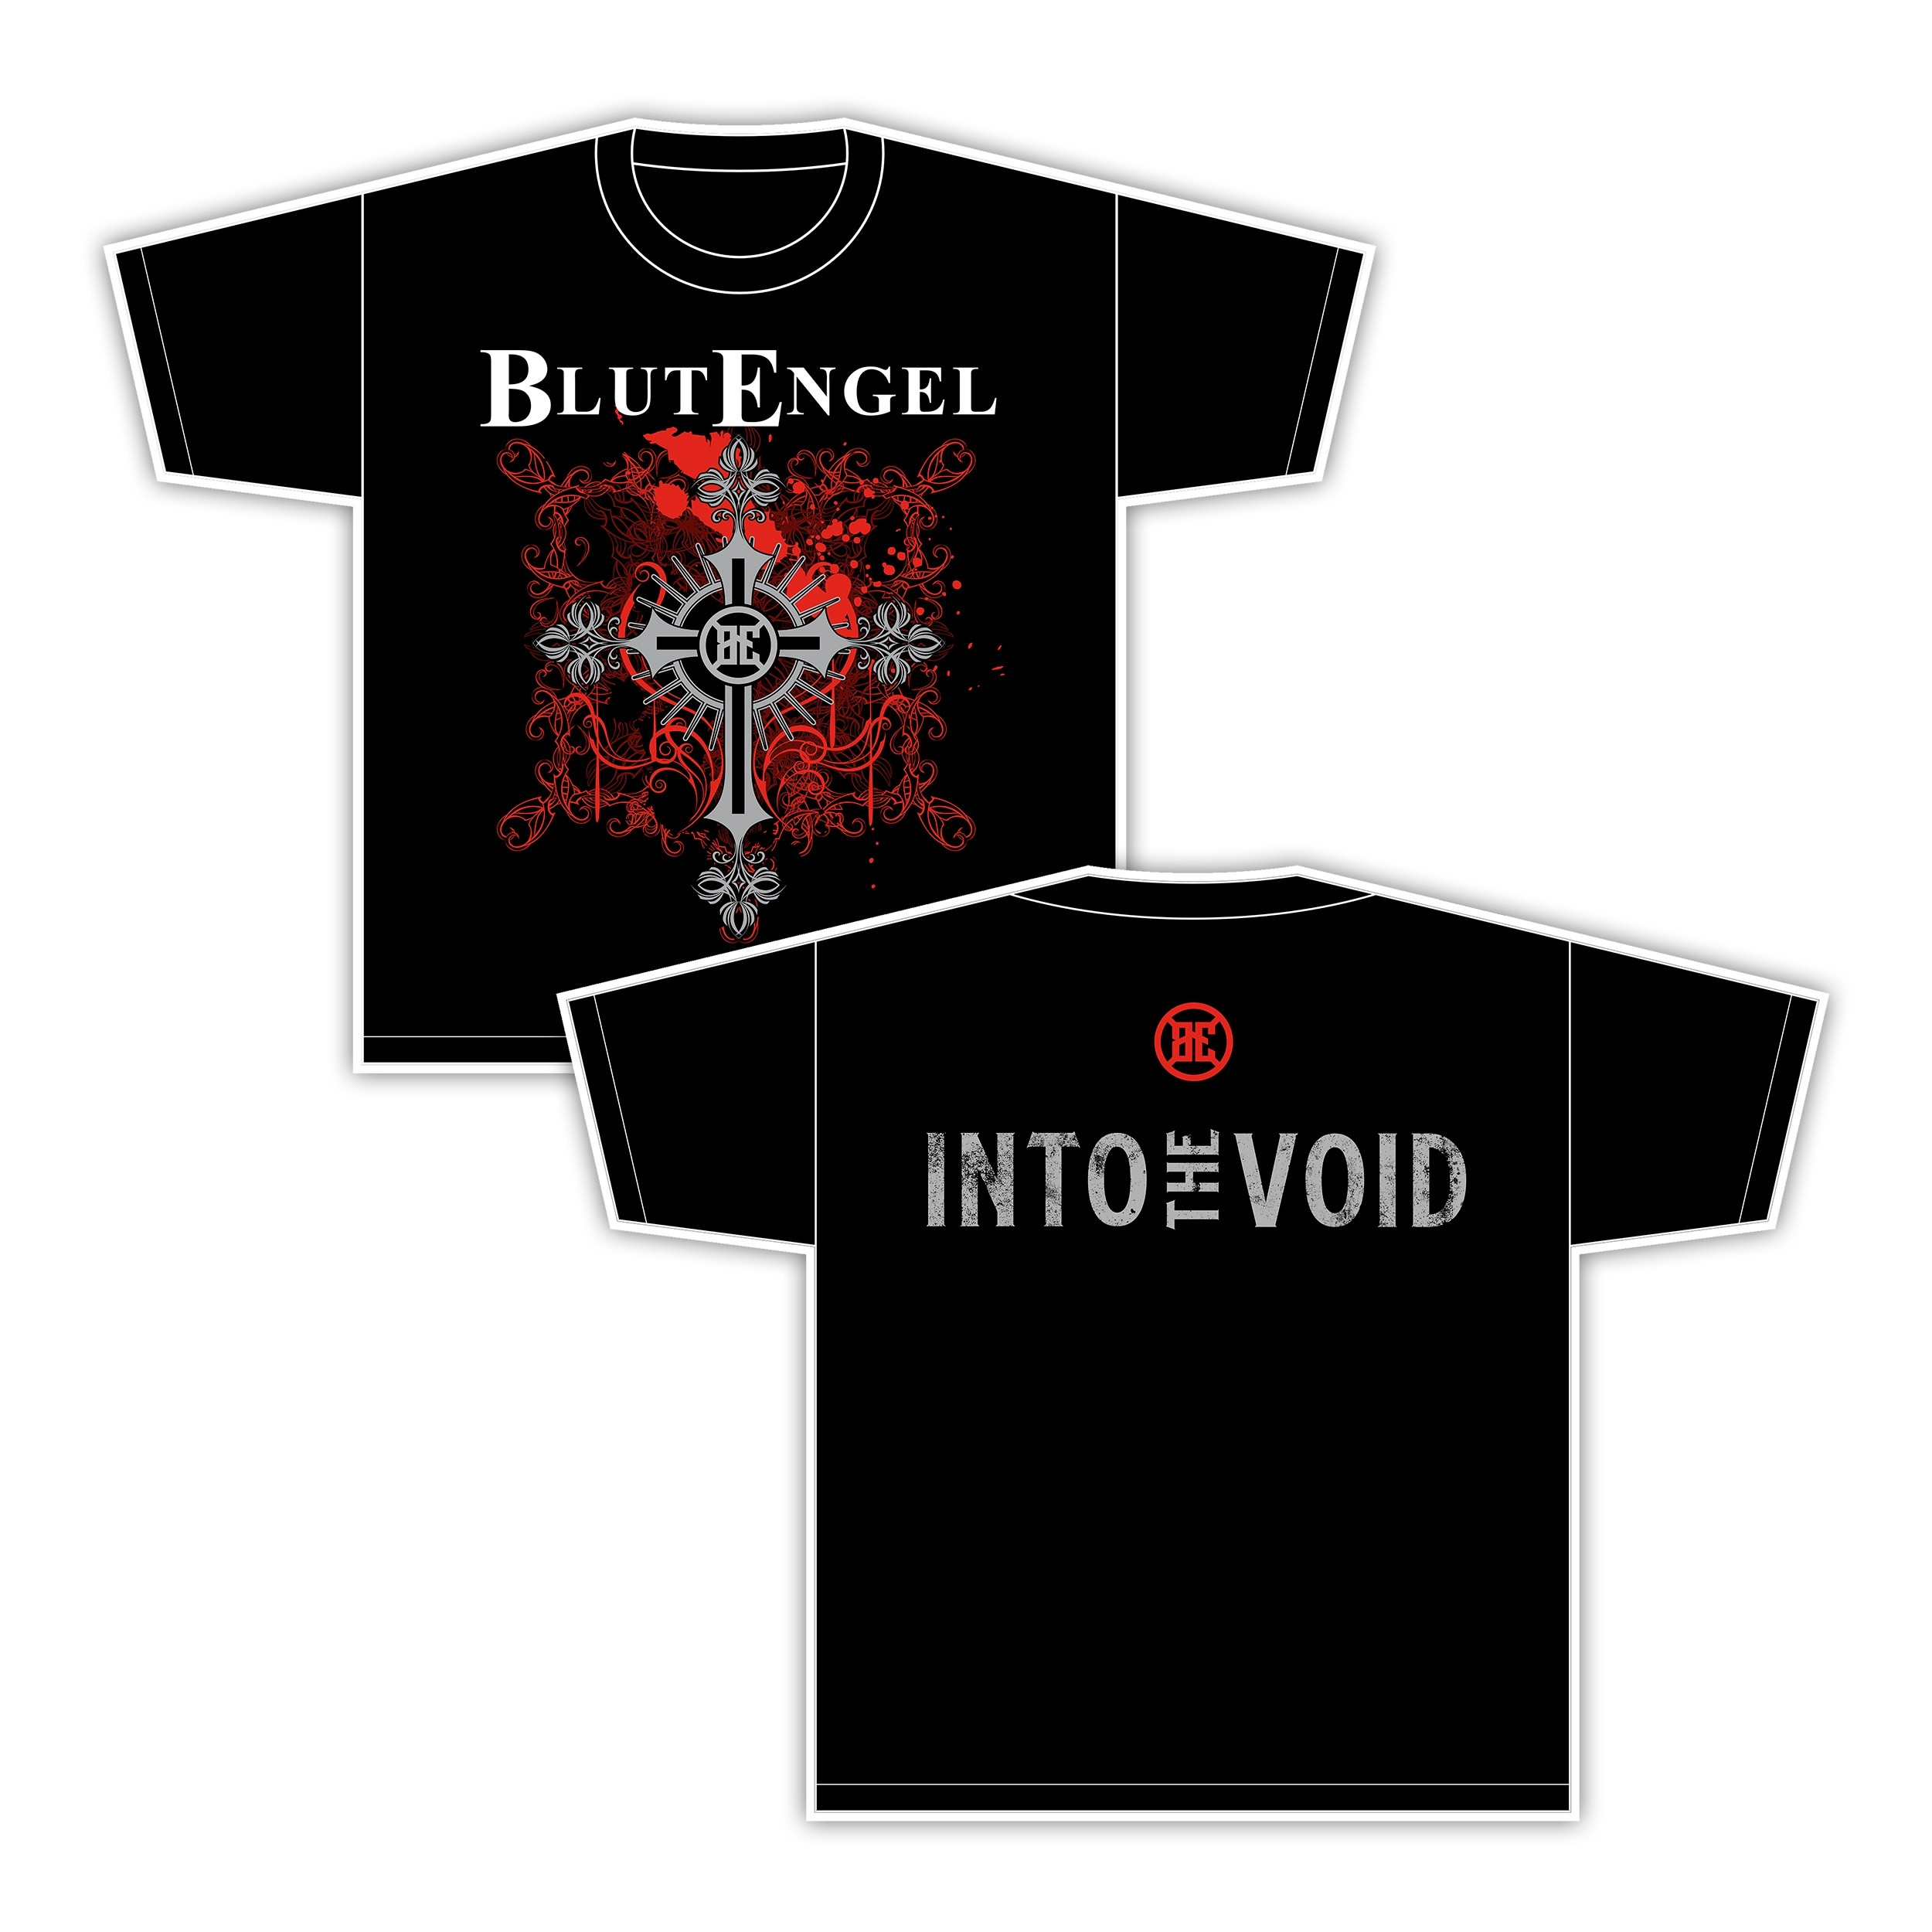 Blutengel - Into The Void - T-Shirt